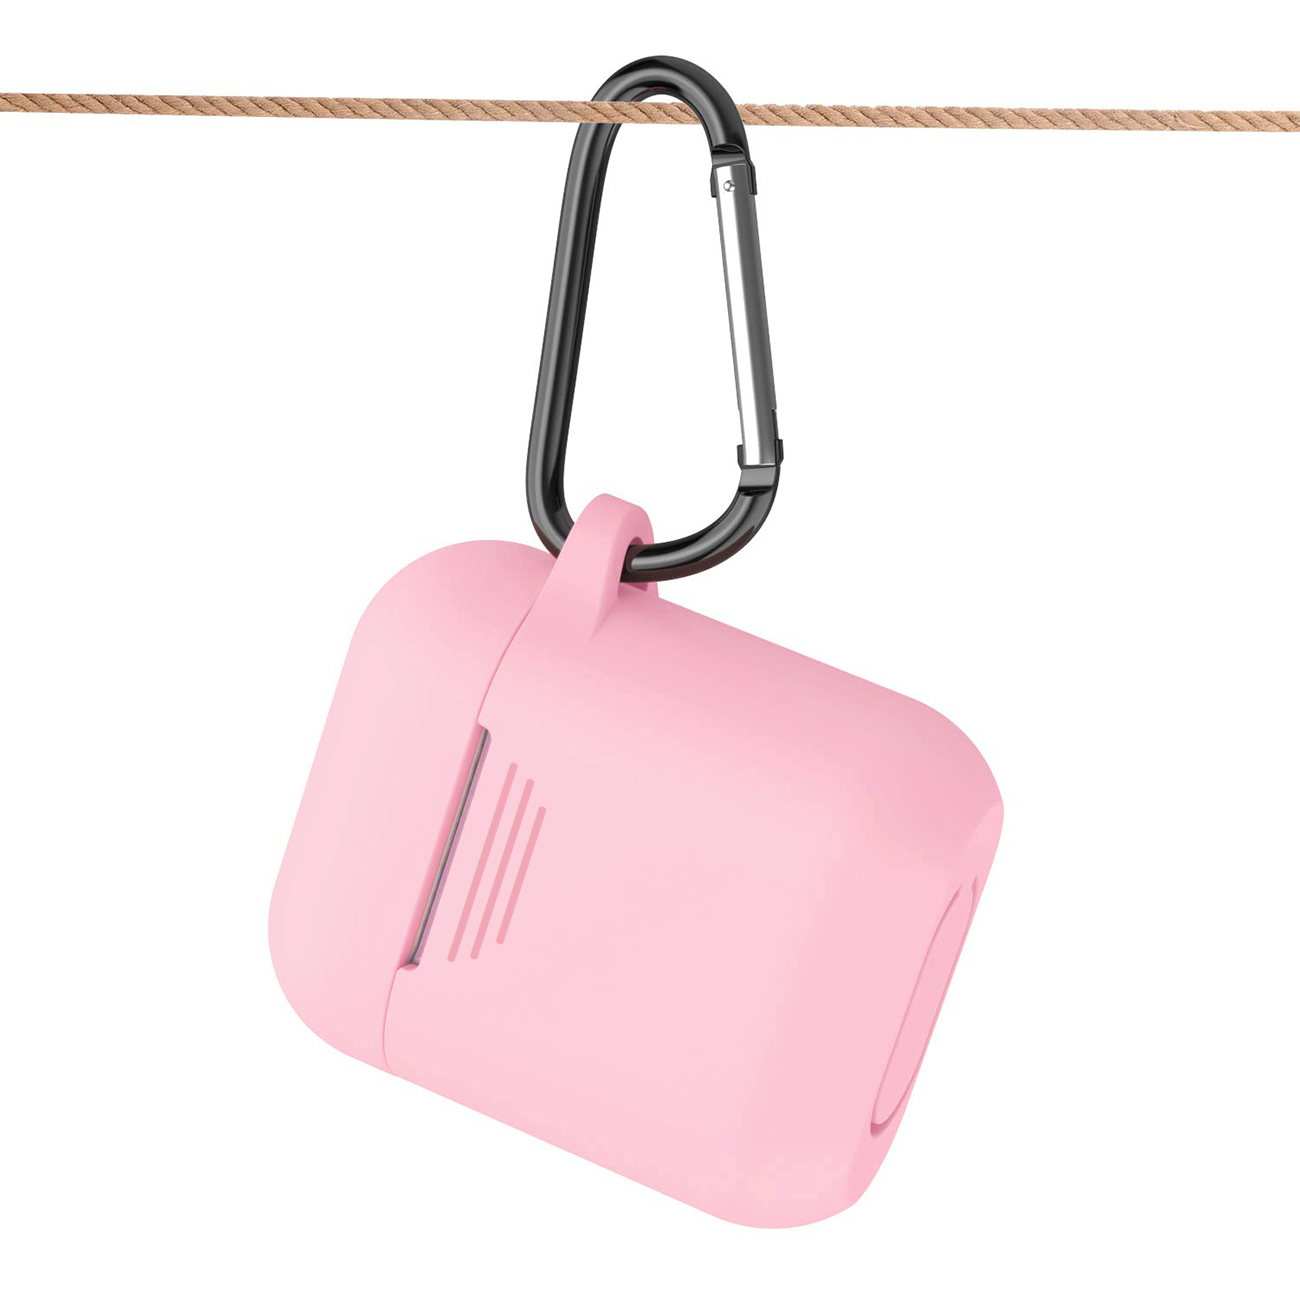 Silicone Case for Airpods in Pink